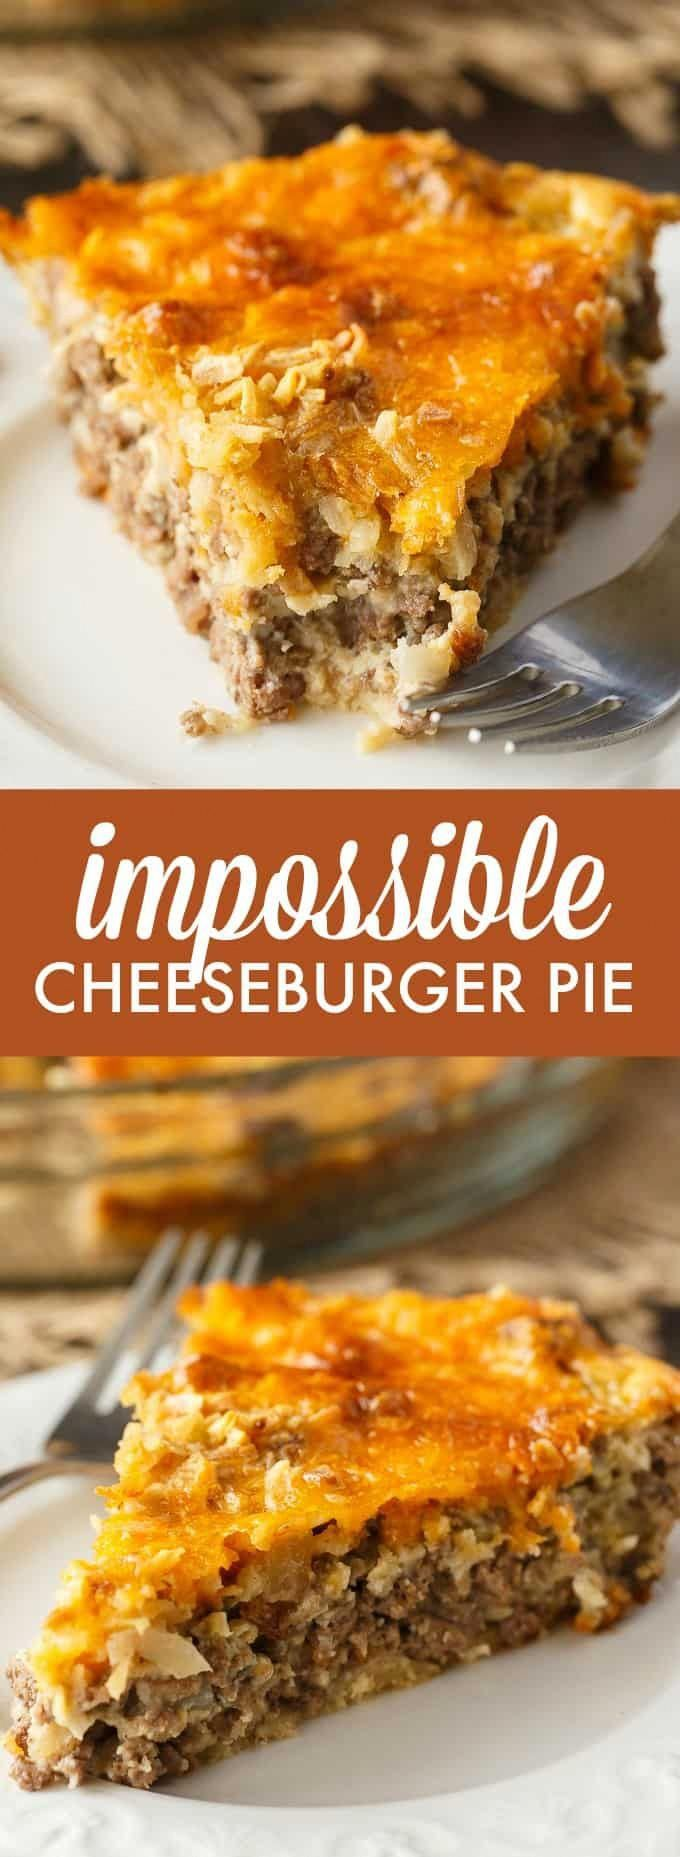 Impossible Cheeseburger Pie - Super easy and delicious! This yummy recipe is full of cheesy beefy flavor that everyone loves. #casserolerecipes #impossiblecheeseburgerpie